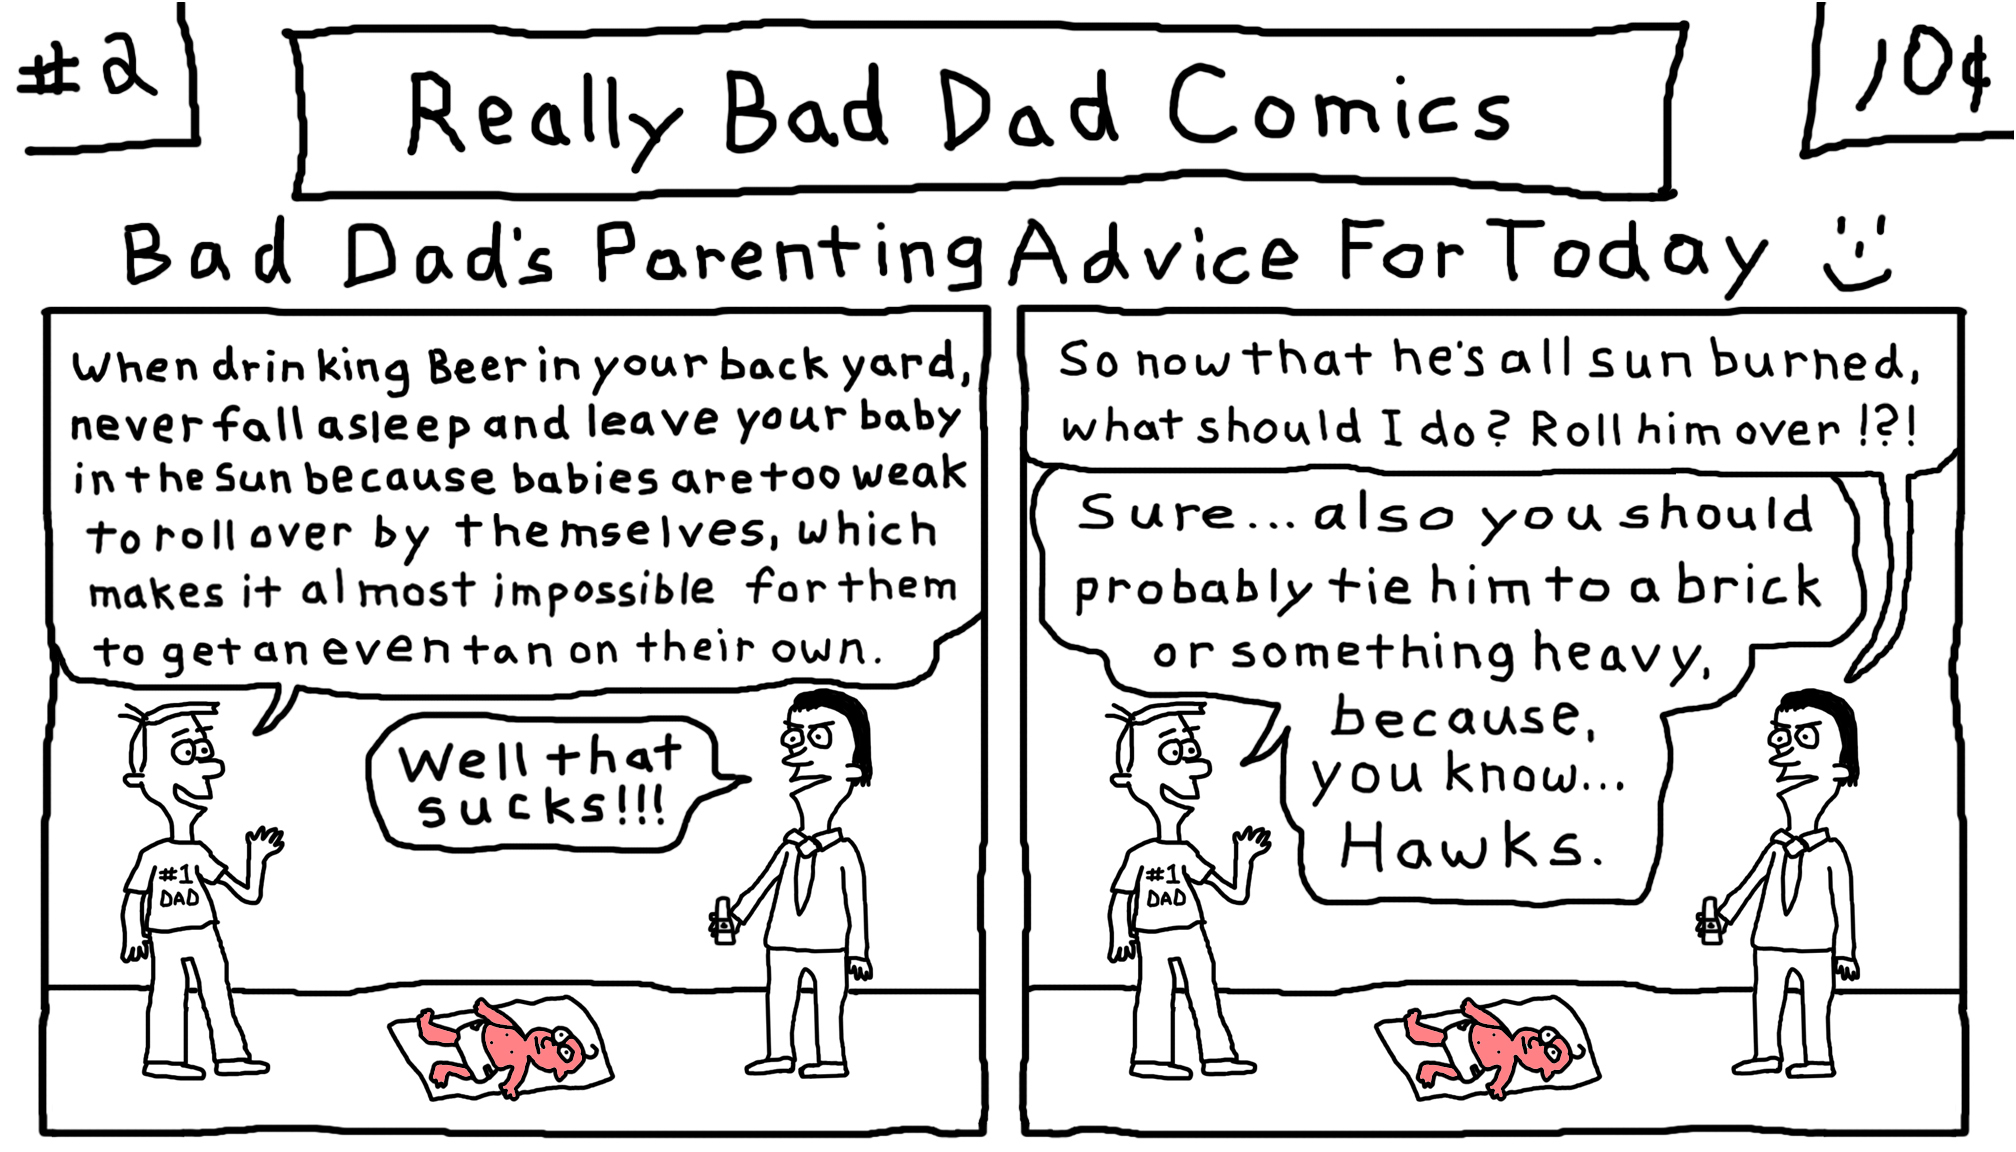 Really Bad Dad Comics # 2